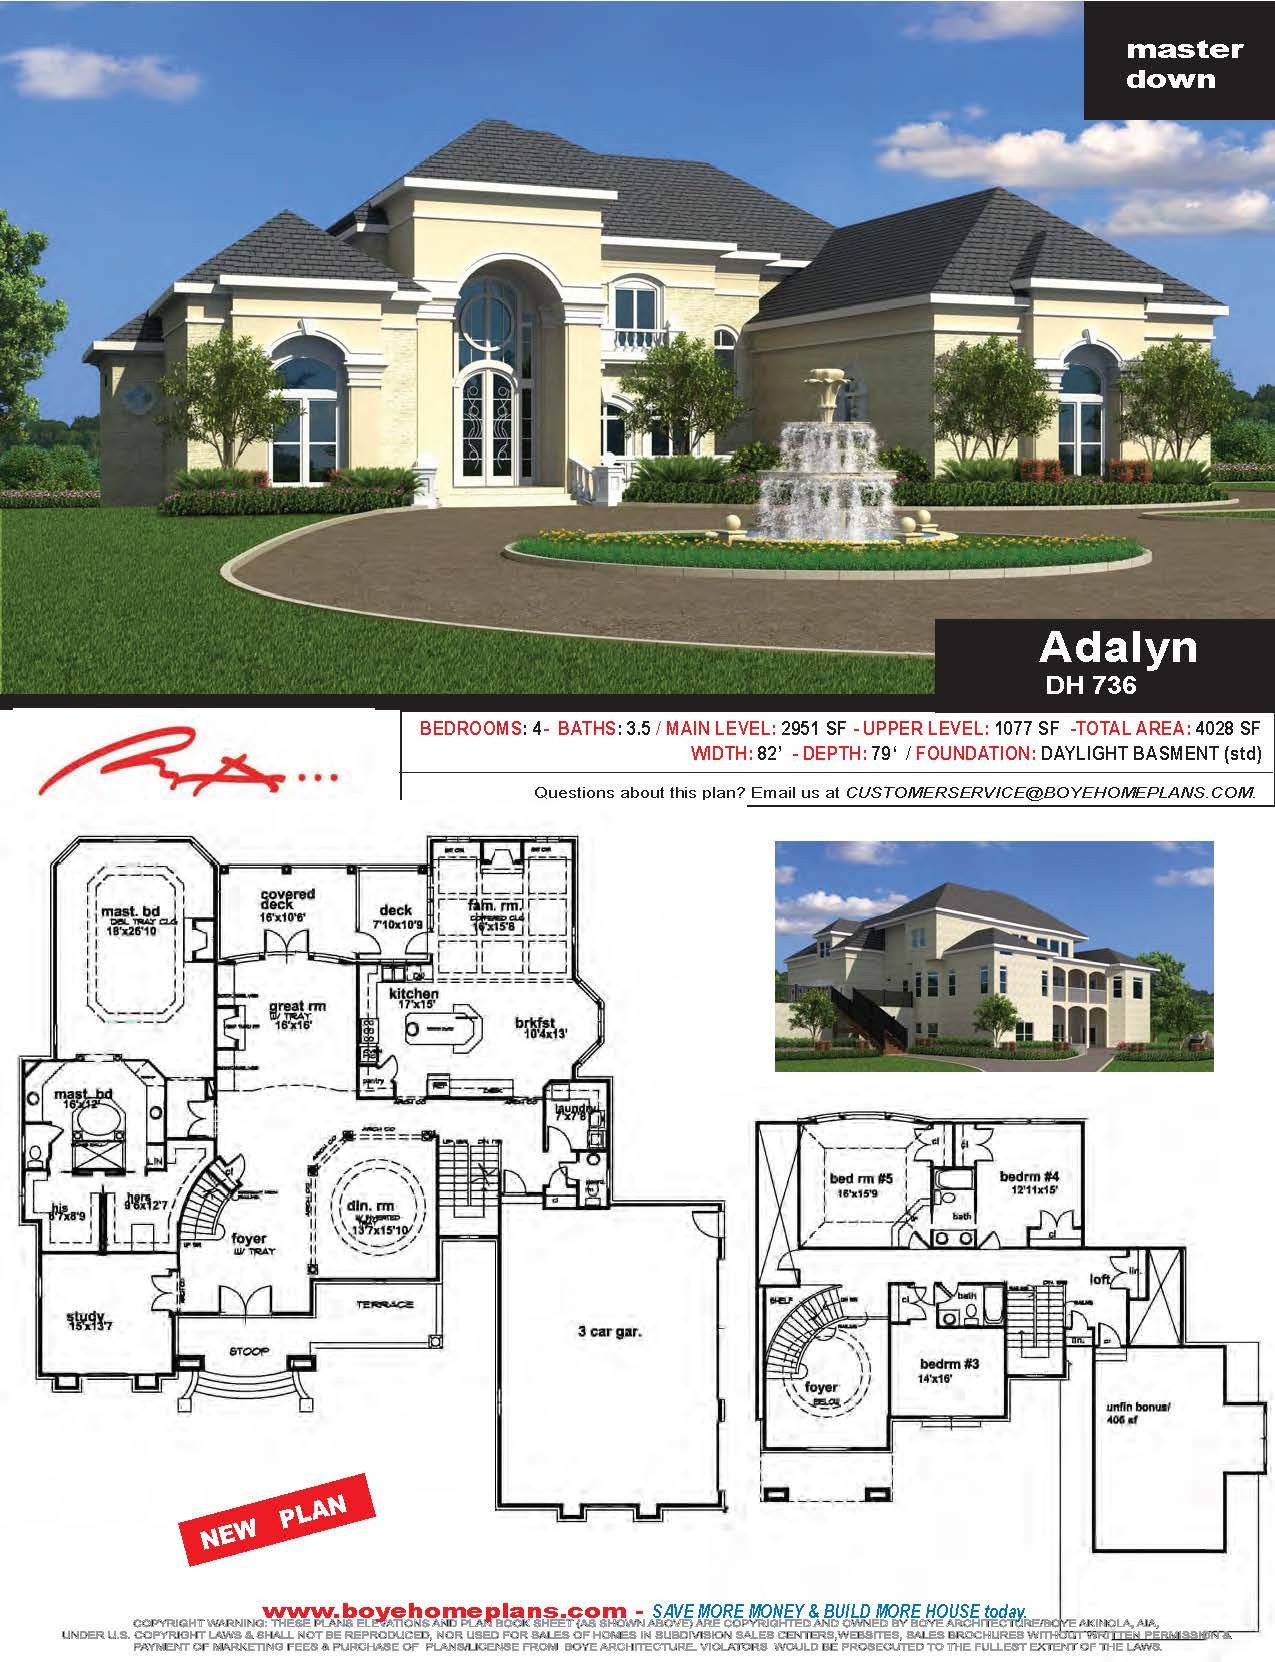 ADALYN PLAN PAGE-DH 736-081917.jpg